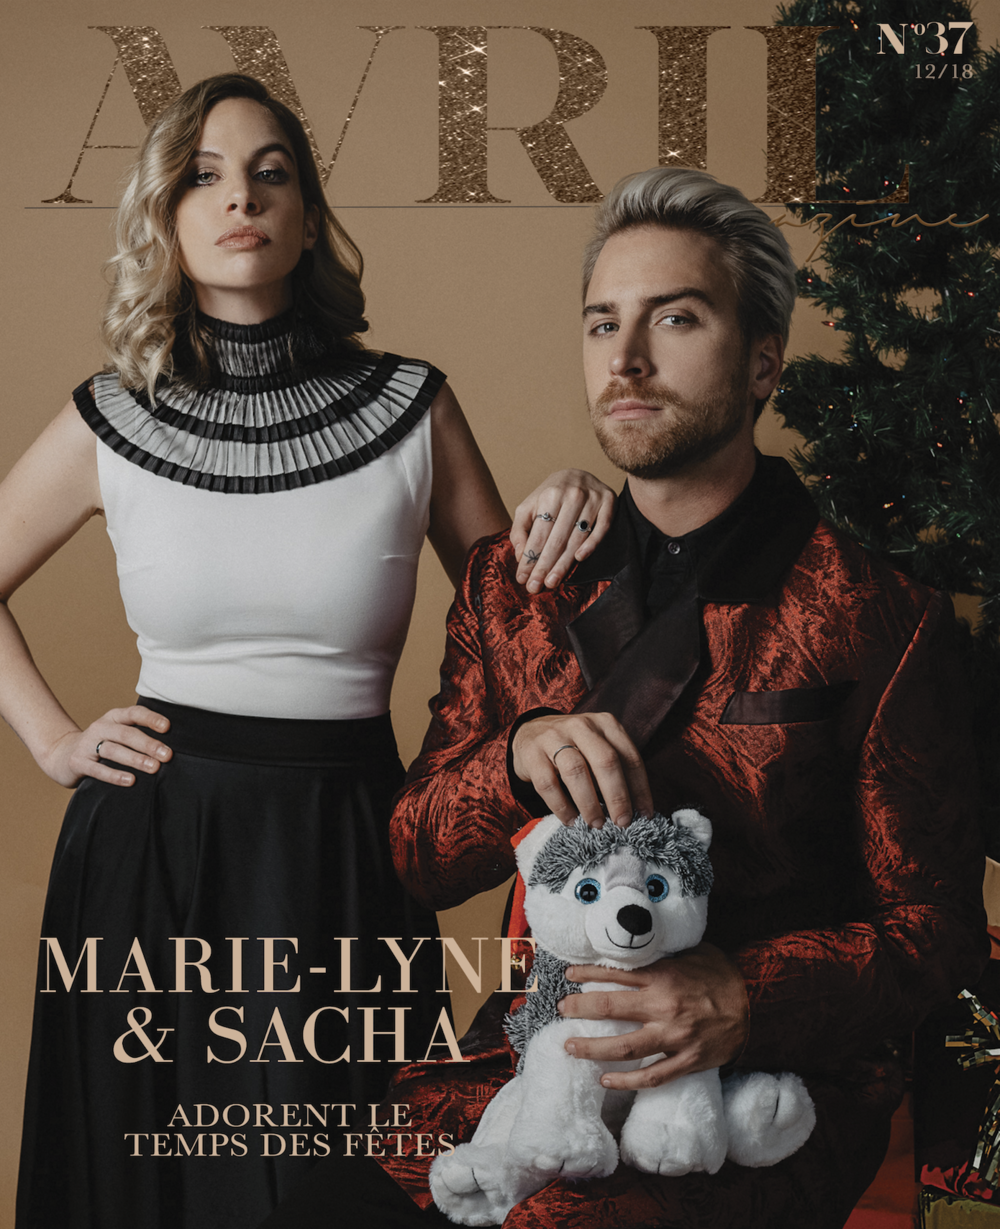 Cover_marielyne-sacha_Avril Magazine_dec2018.jpg